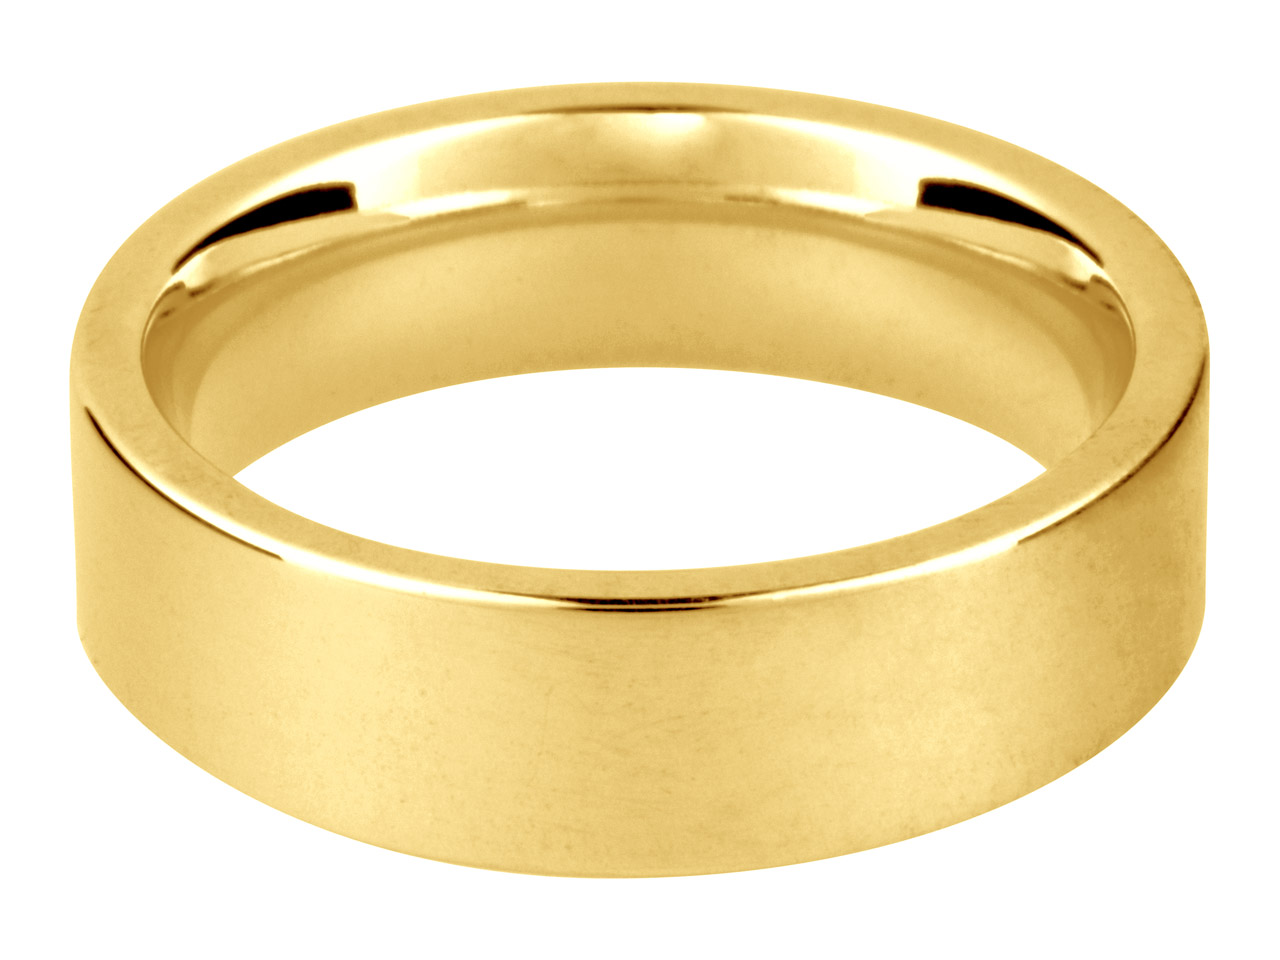 18ct Yellow Easy Fit Wedding Ring  4.0mm X 6.5gms Medium Weight       Hallmarked Wall Thickness 1.56mm